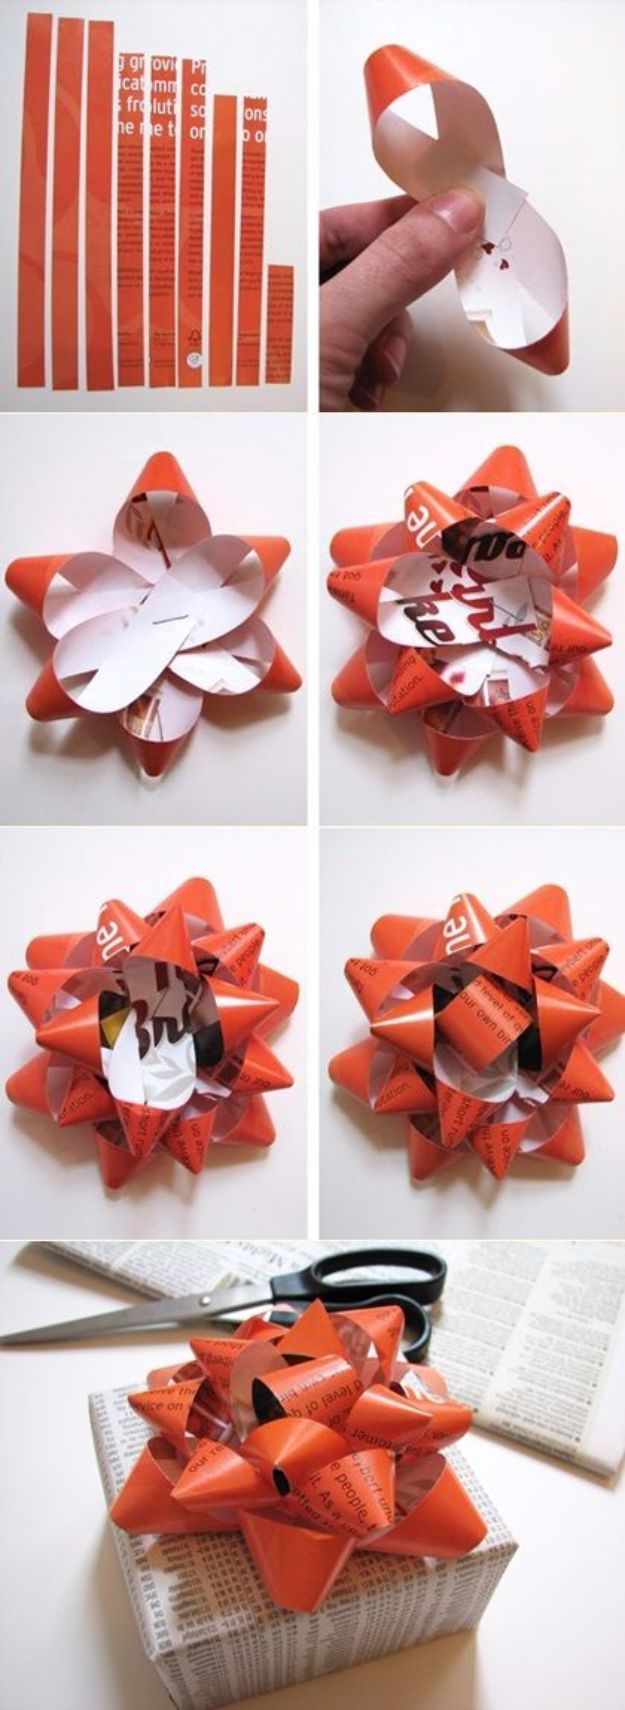 Creative Bows For Packages - Gift Bow From A Magazine Page - Make DIY Bows for Christmas Presents and Holiday Gifts - Cute and Easy Ideas for Making Your Own Bows and Ribbons - Step by Step Tutorials and Instructions for Tying A Bow - Cheap and Crafty Gift Wrapping Ideas on A Budget http://diyjoy.com/diy-bows-gifts-packages